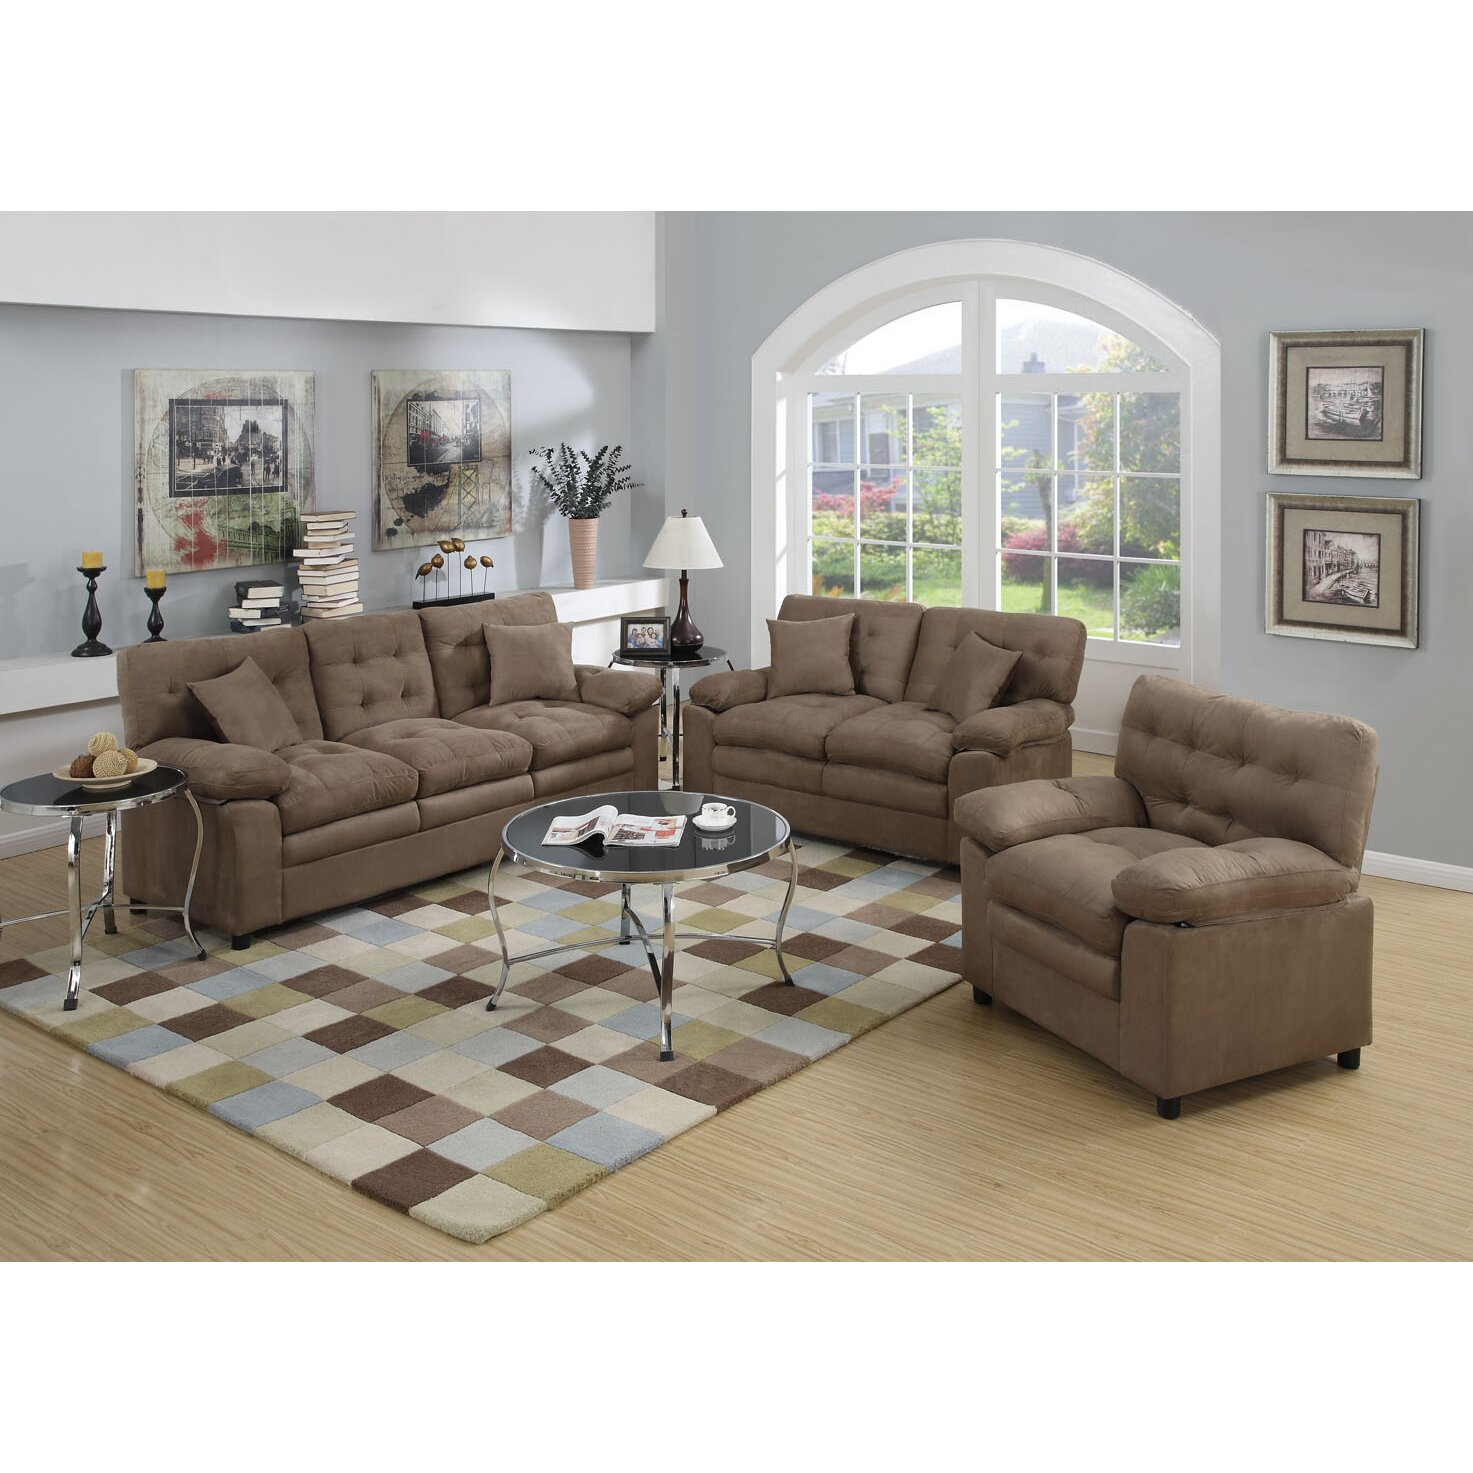 Poundex bobkona colona 3 piece living room set reviews wayfair - Living room furnature ...